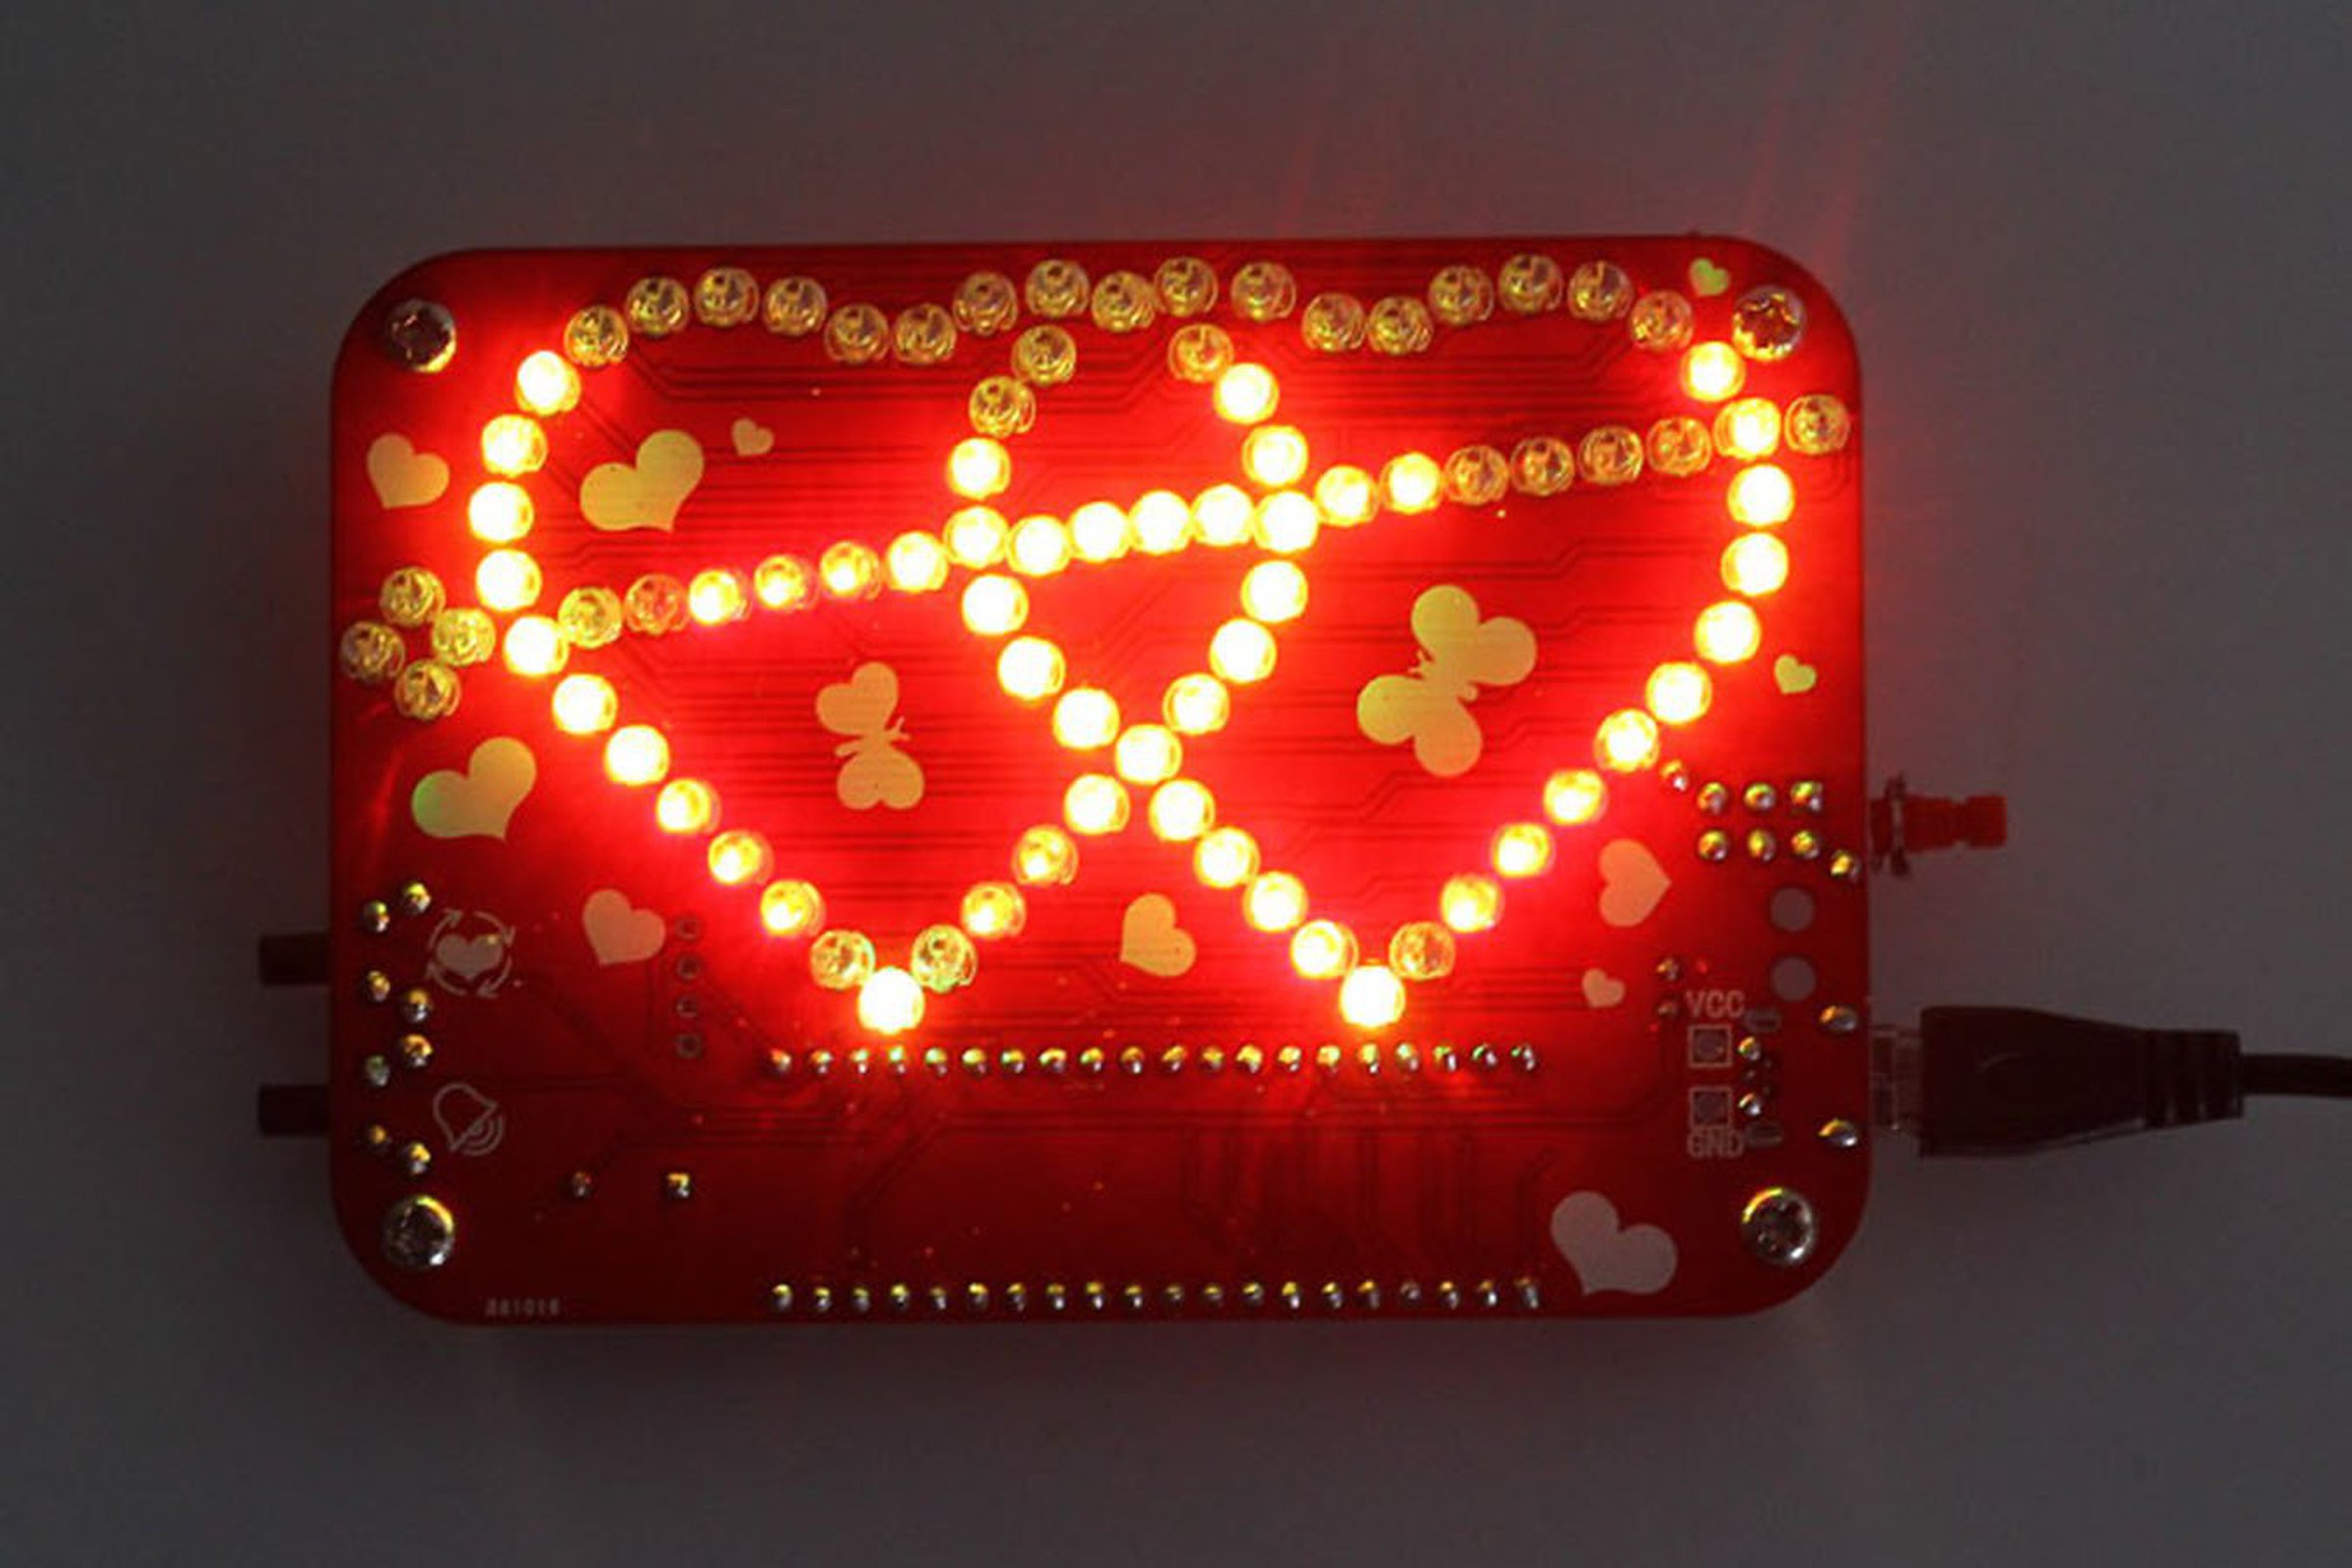 Rgb Led Heart Shaped Flashing Light Kit 13054 From Icstation On Tindie Battery Status Indicator 6